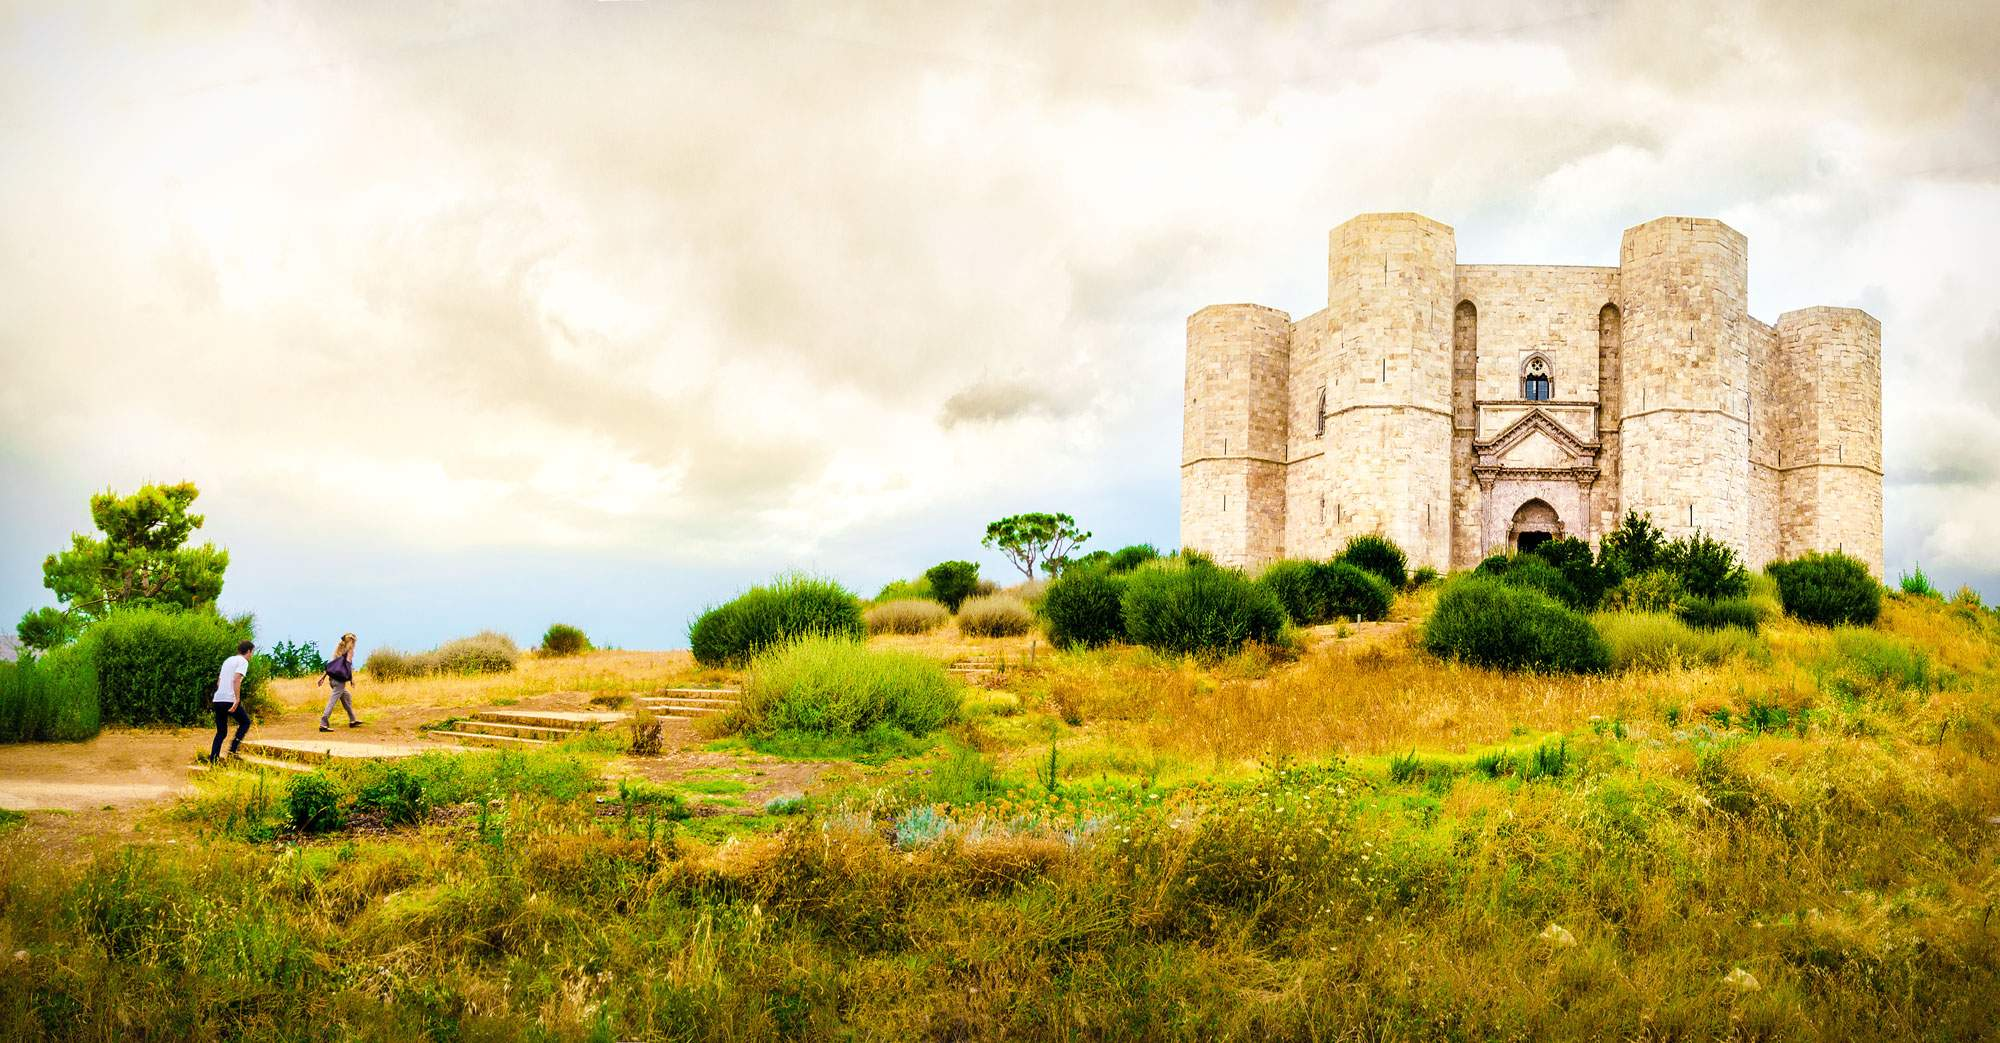 castel-del-monte-puglia-italy-travel-walking